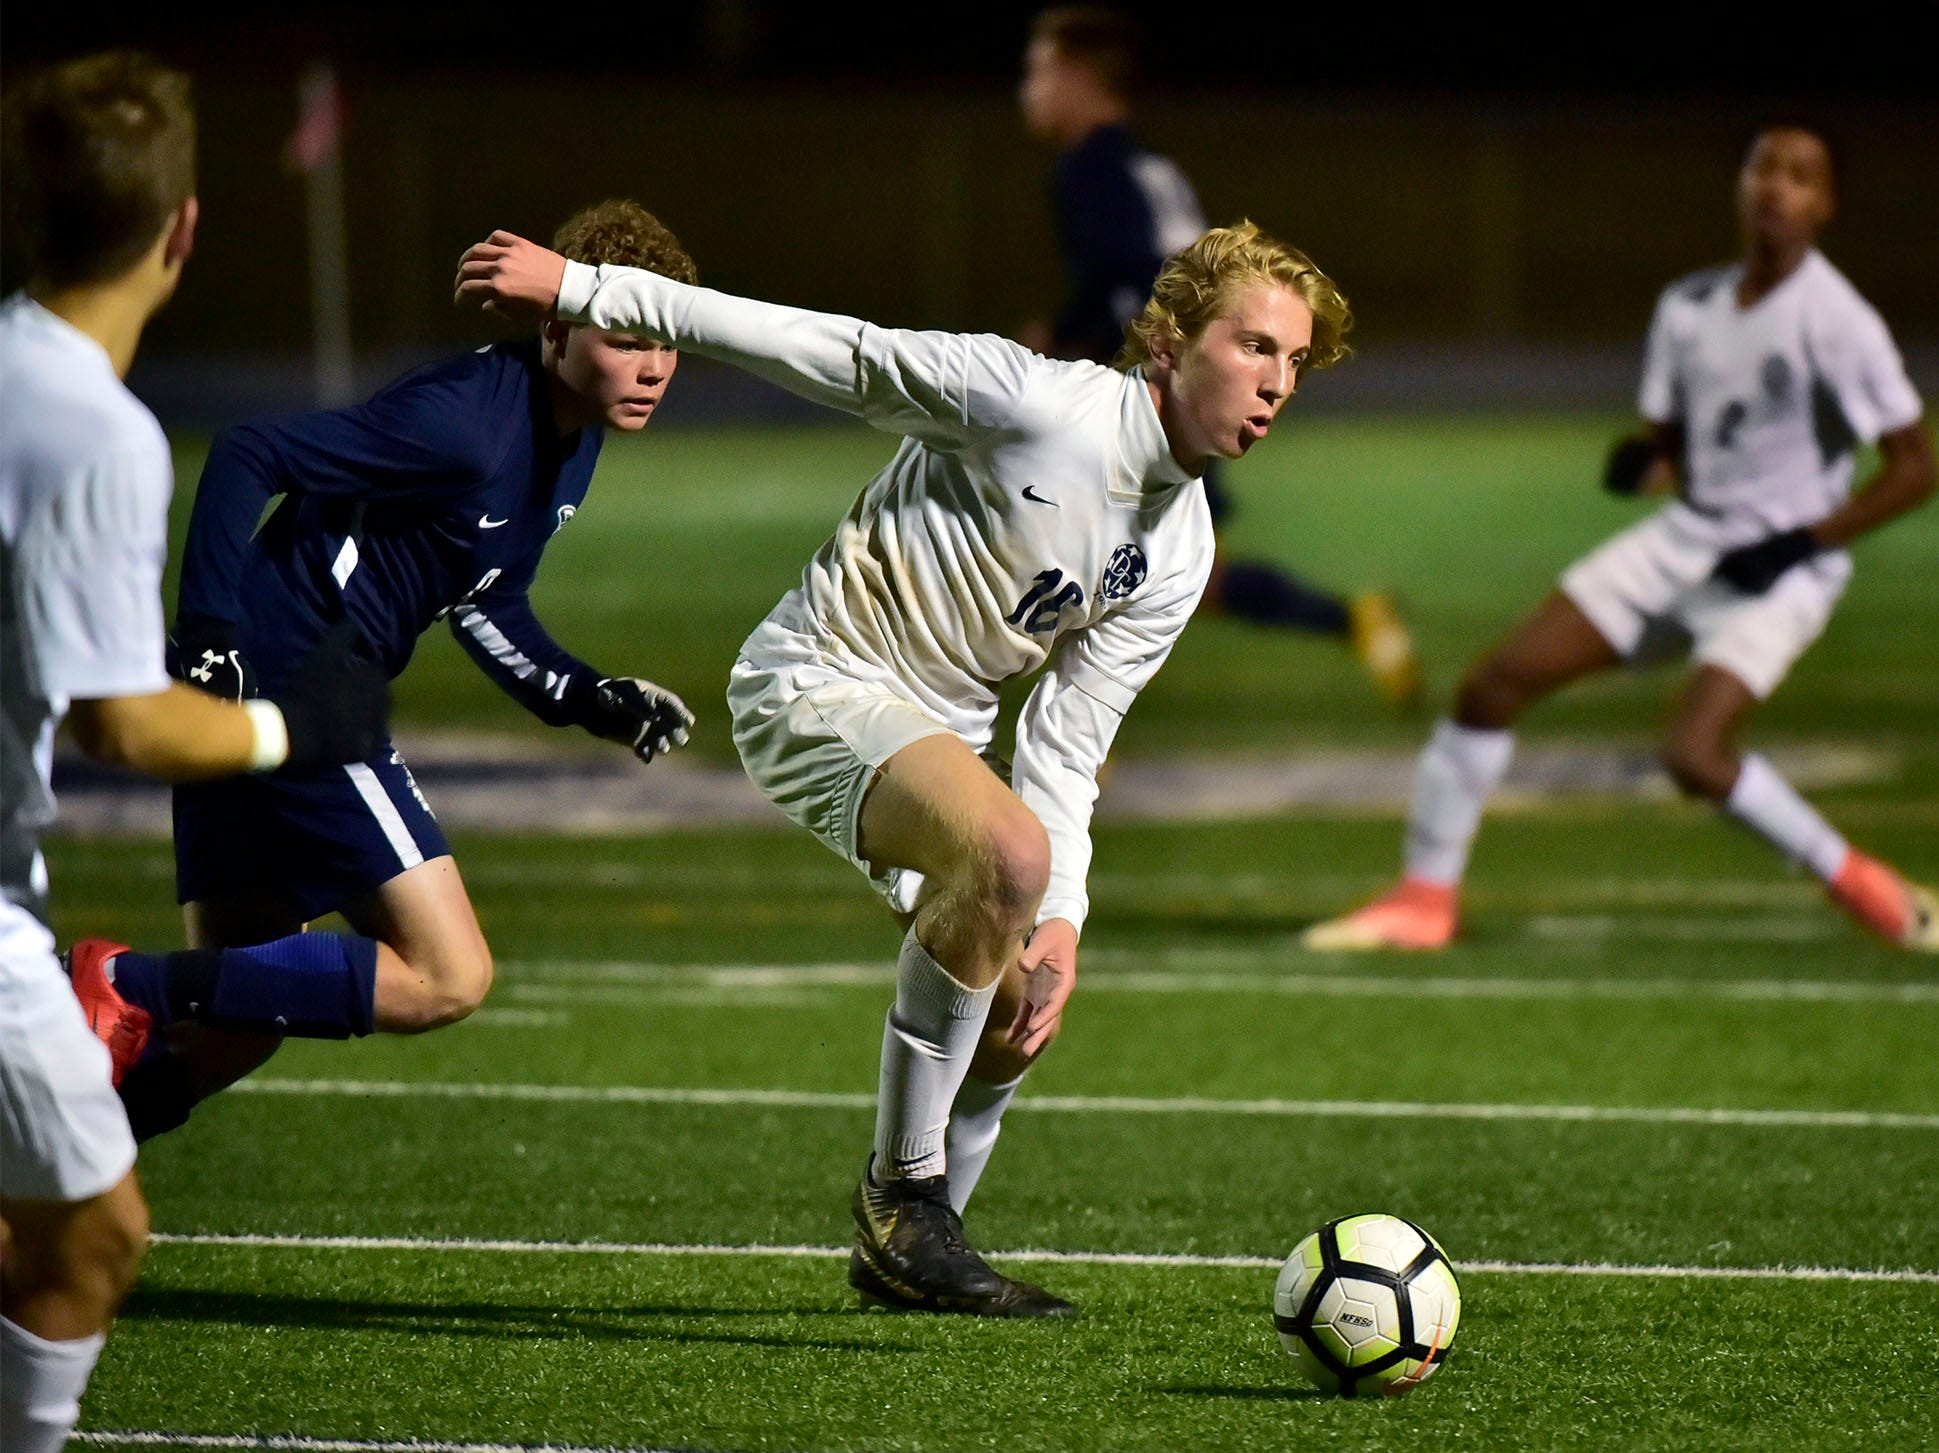 Dallastown's Cole Larson moves the ball for the Wildcats. Chambersburg lost a first round D3 soccer match to Dallastown 2-1 on Tuesday, Oct. 23, 2018.